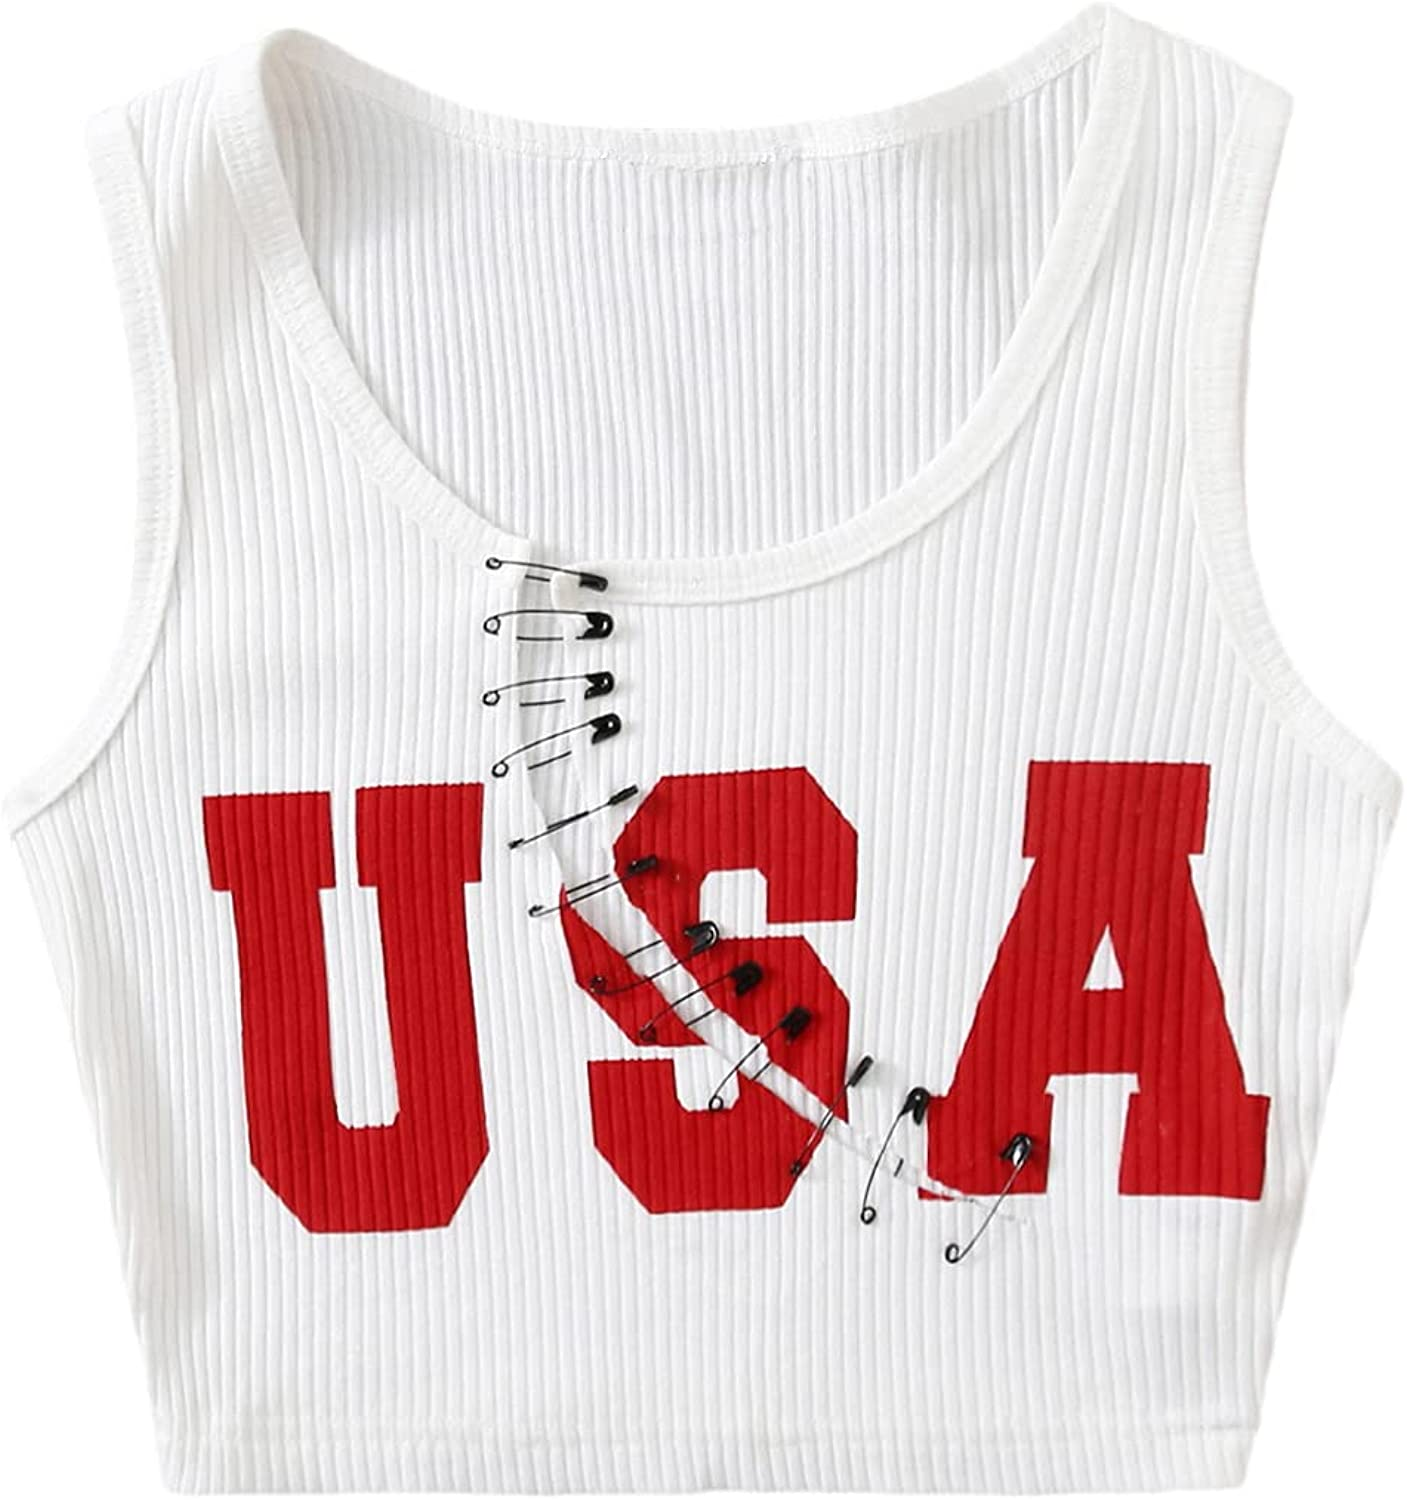 Floerns Women's Sleeveless Scoop Neck Ribbed Letter Graphic Print Crop Tank Top